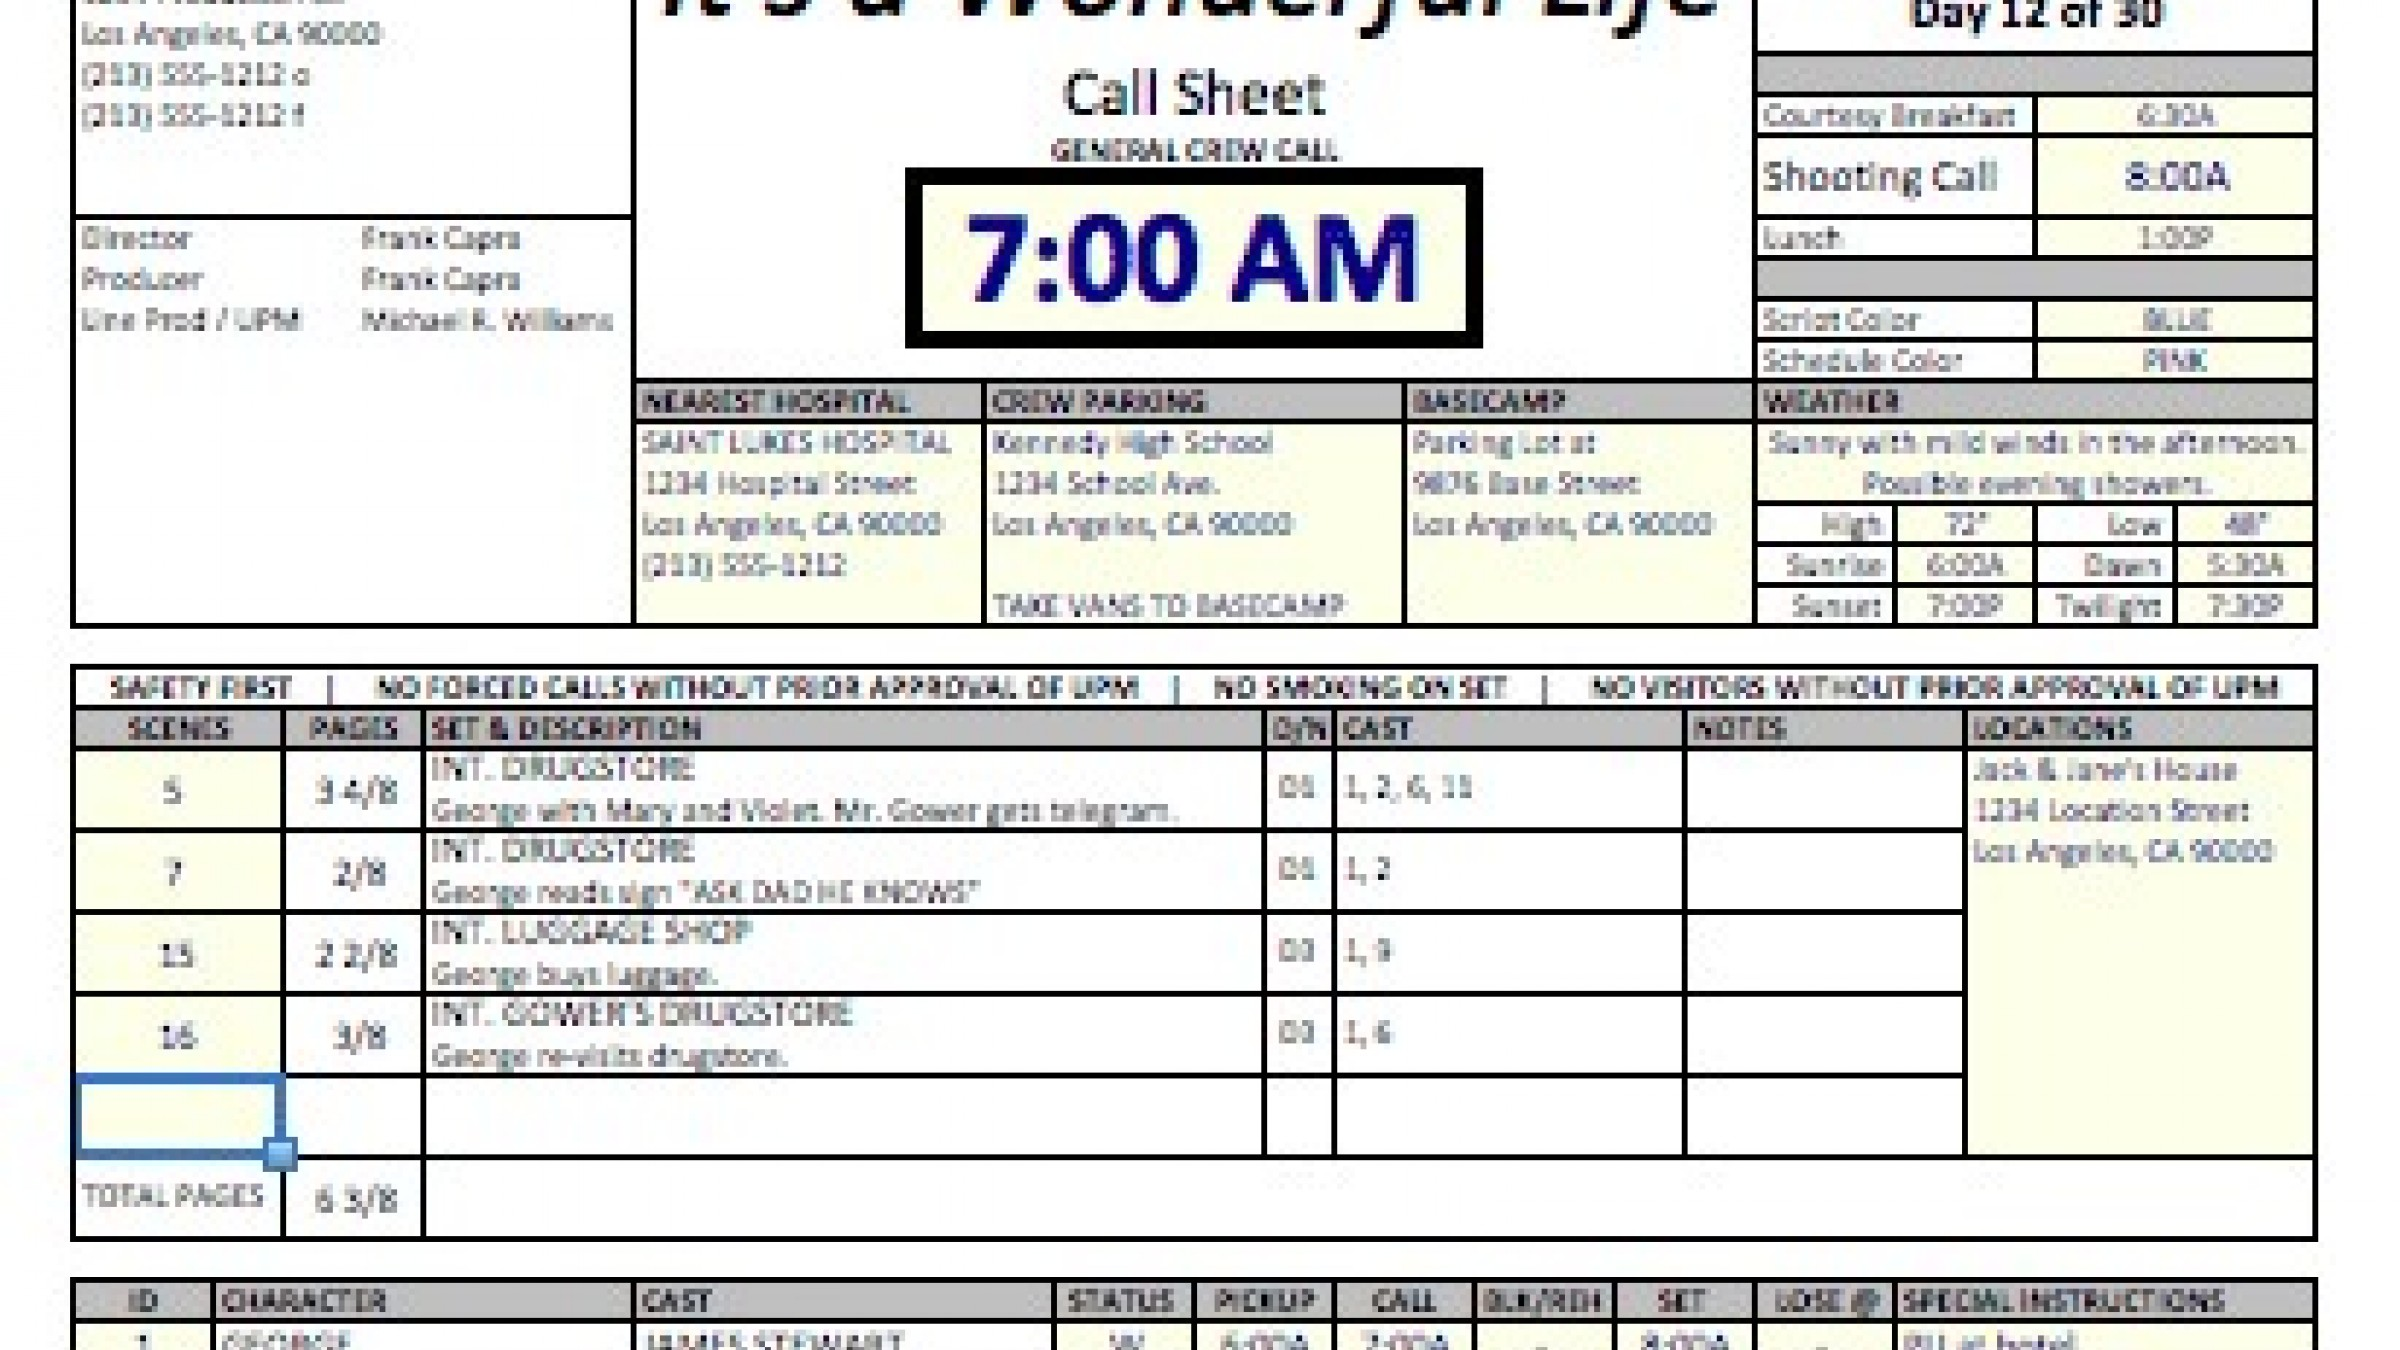 Job Sheet Format Excel casper u002639 spreadsheet template – Job Sheet Format Excel